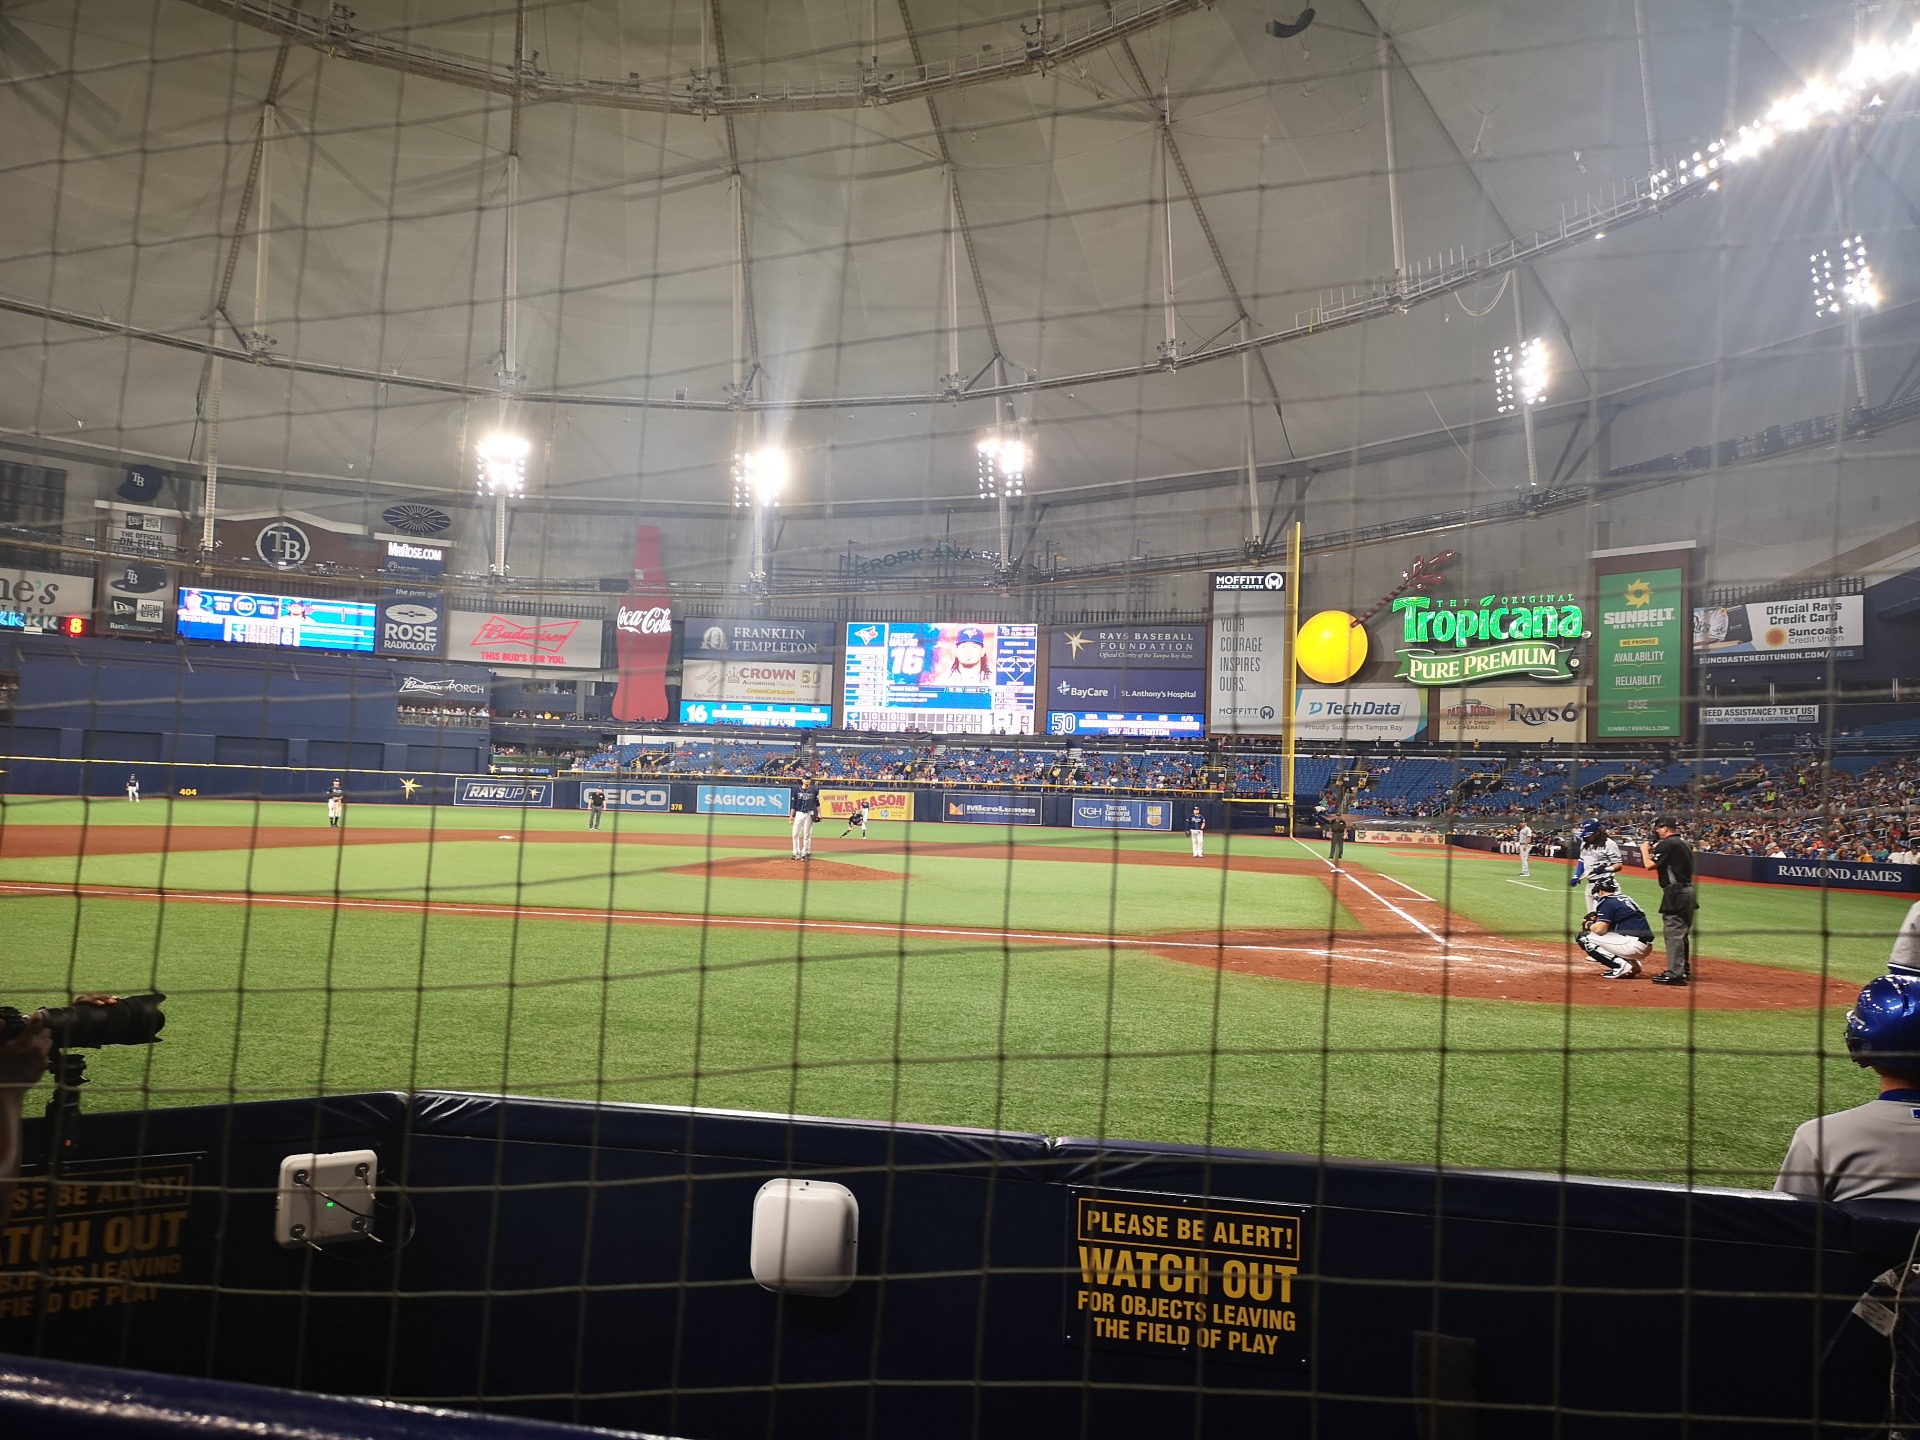 Tropicana Field, section 119, row G, seat 7 - Tampa Bay Rays